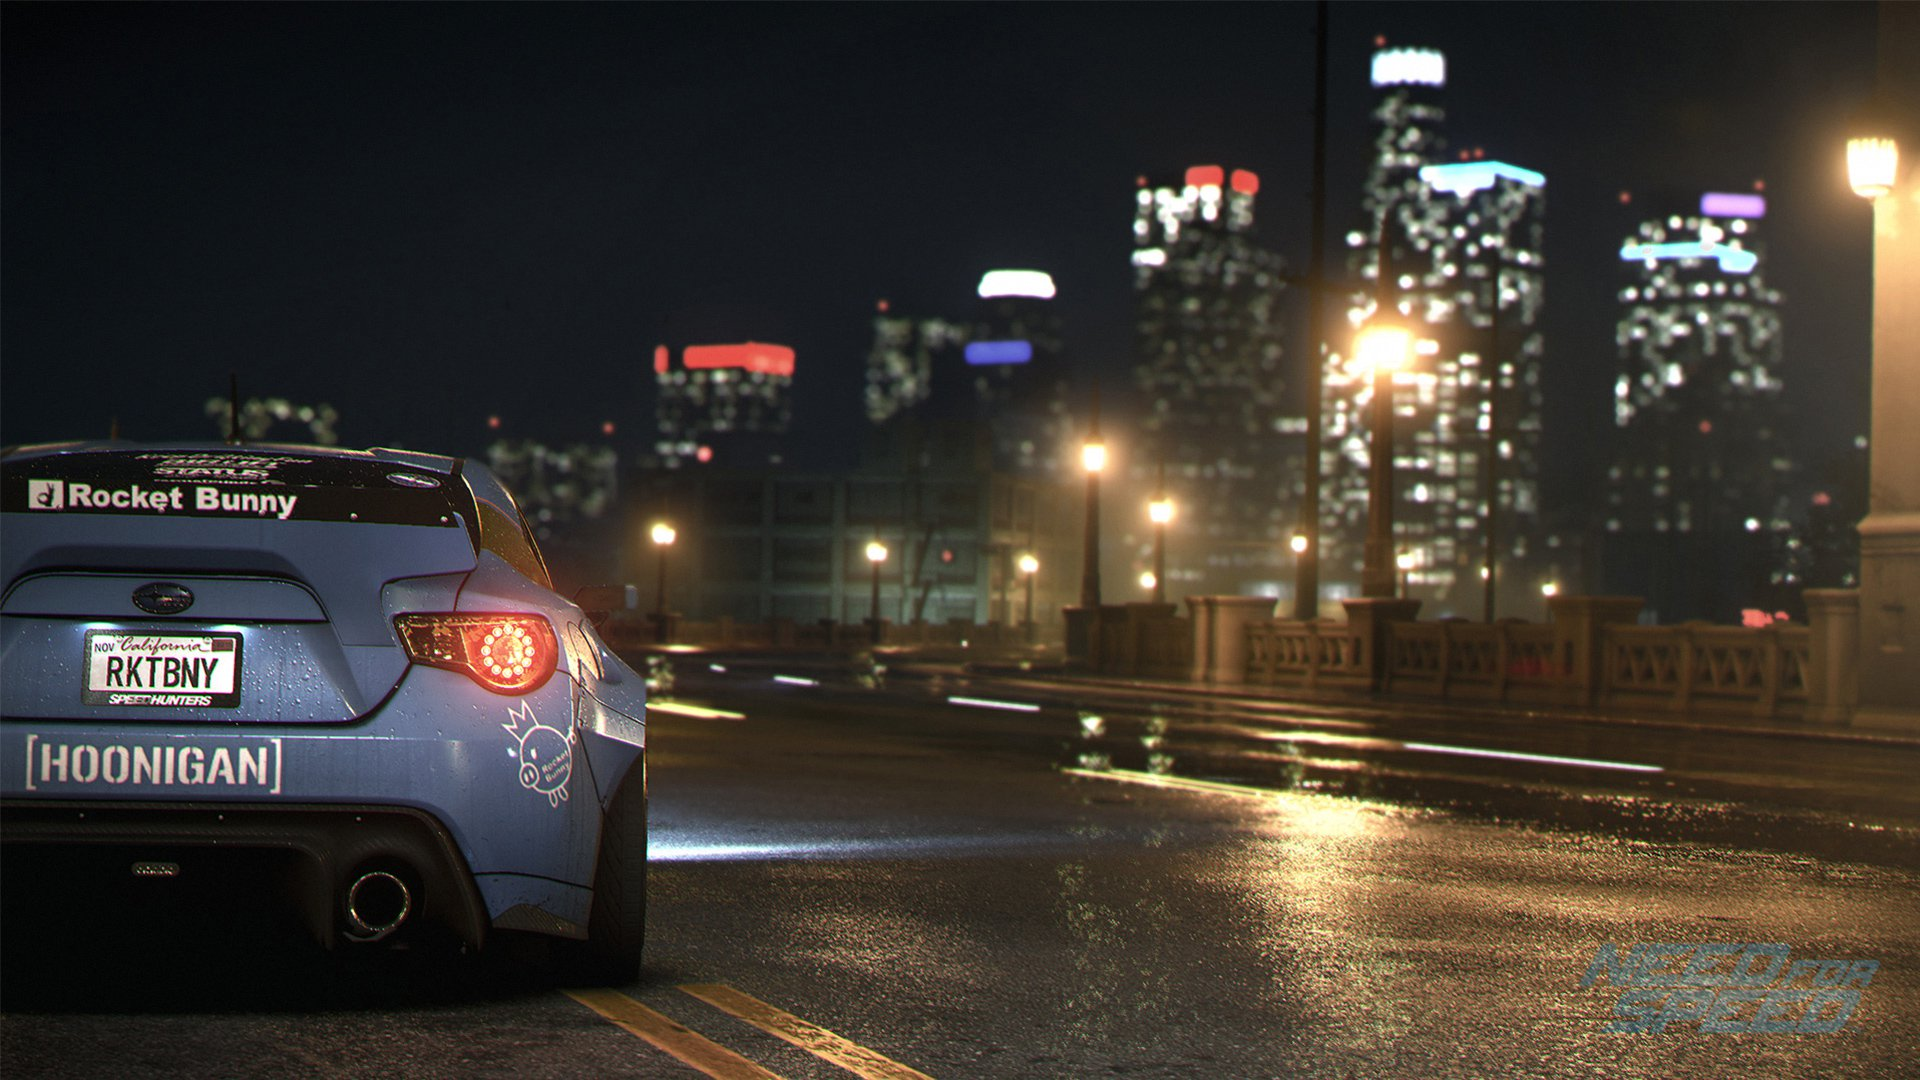 Need For Speed is back with double spoilers and